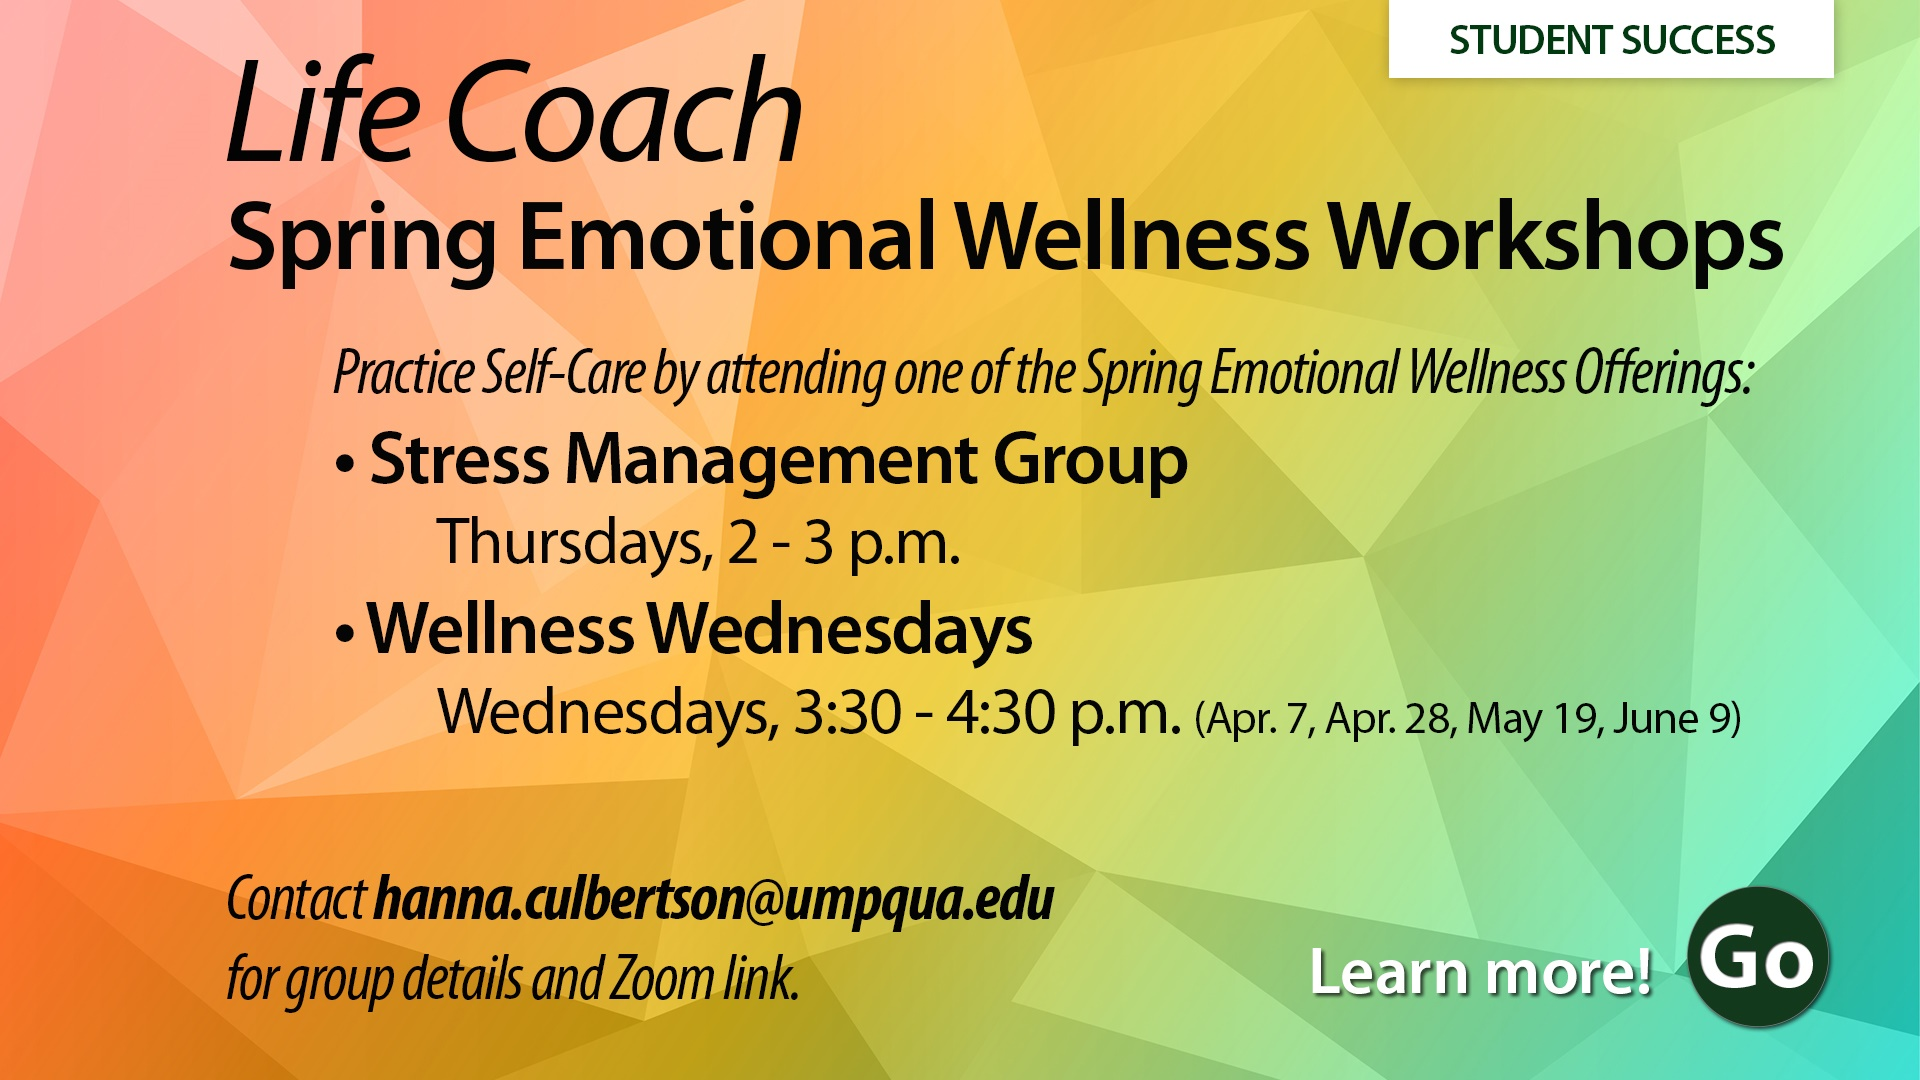 Life Coach Wellness Workshops spring